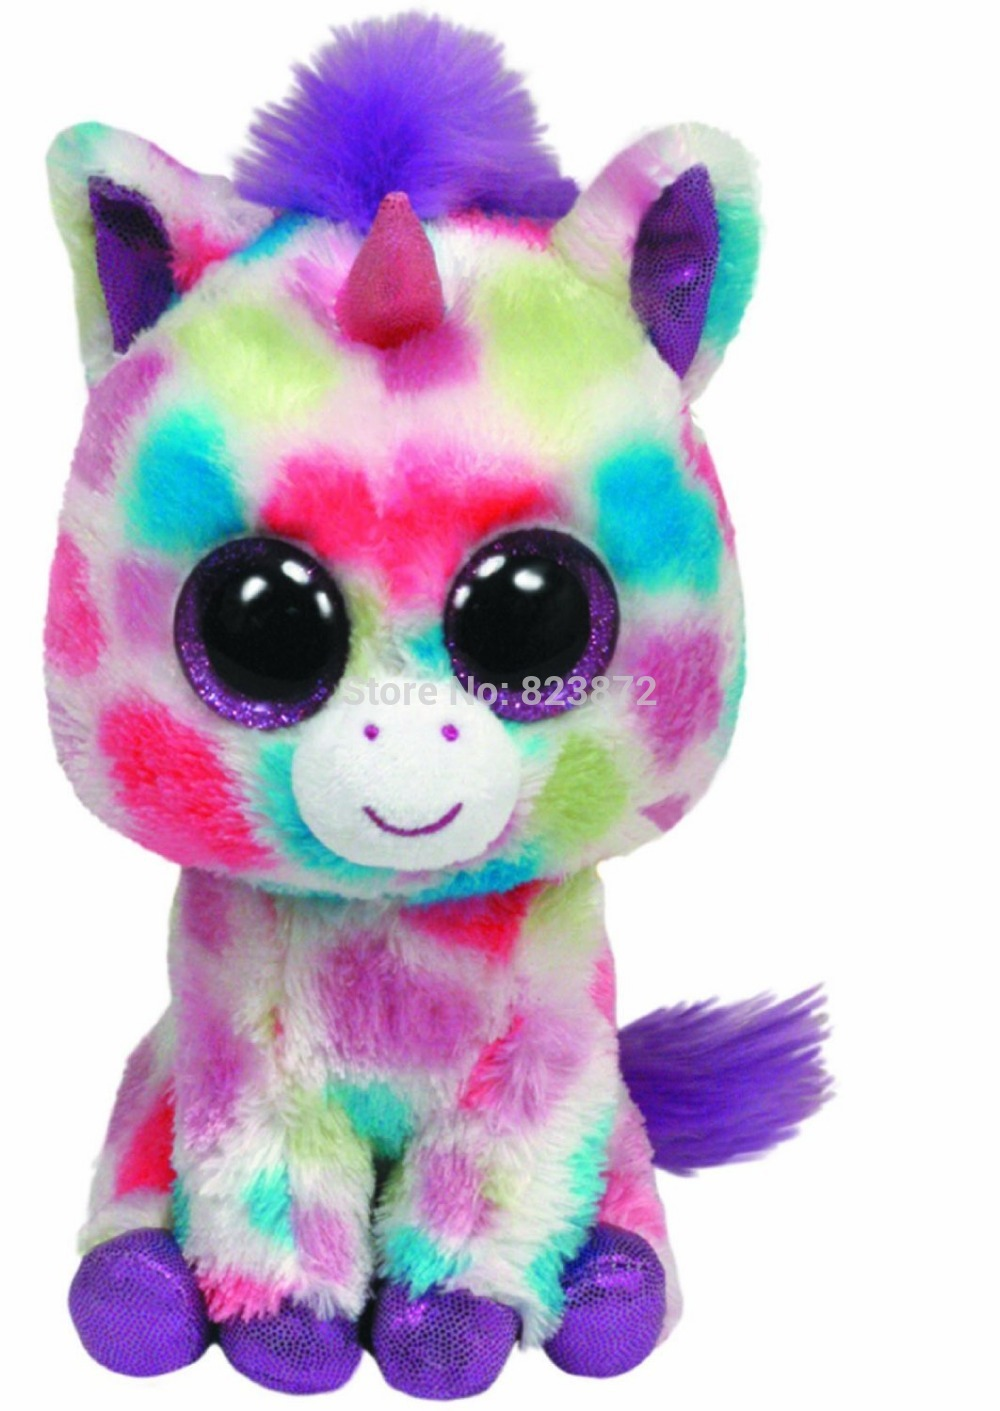 Original TY Big Eyes Beanie Boos Wishful Plush Unicorn Toys 15cm 6   Ty Big  Eyed Stuffed Animals Soft Toys for Children-in Stuffed   Plush Animals from  Toys ... 88d56f24724